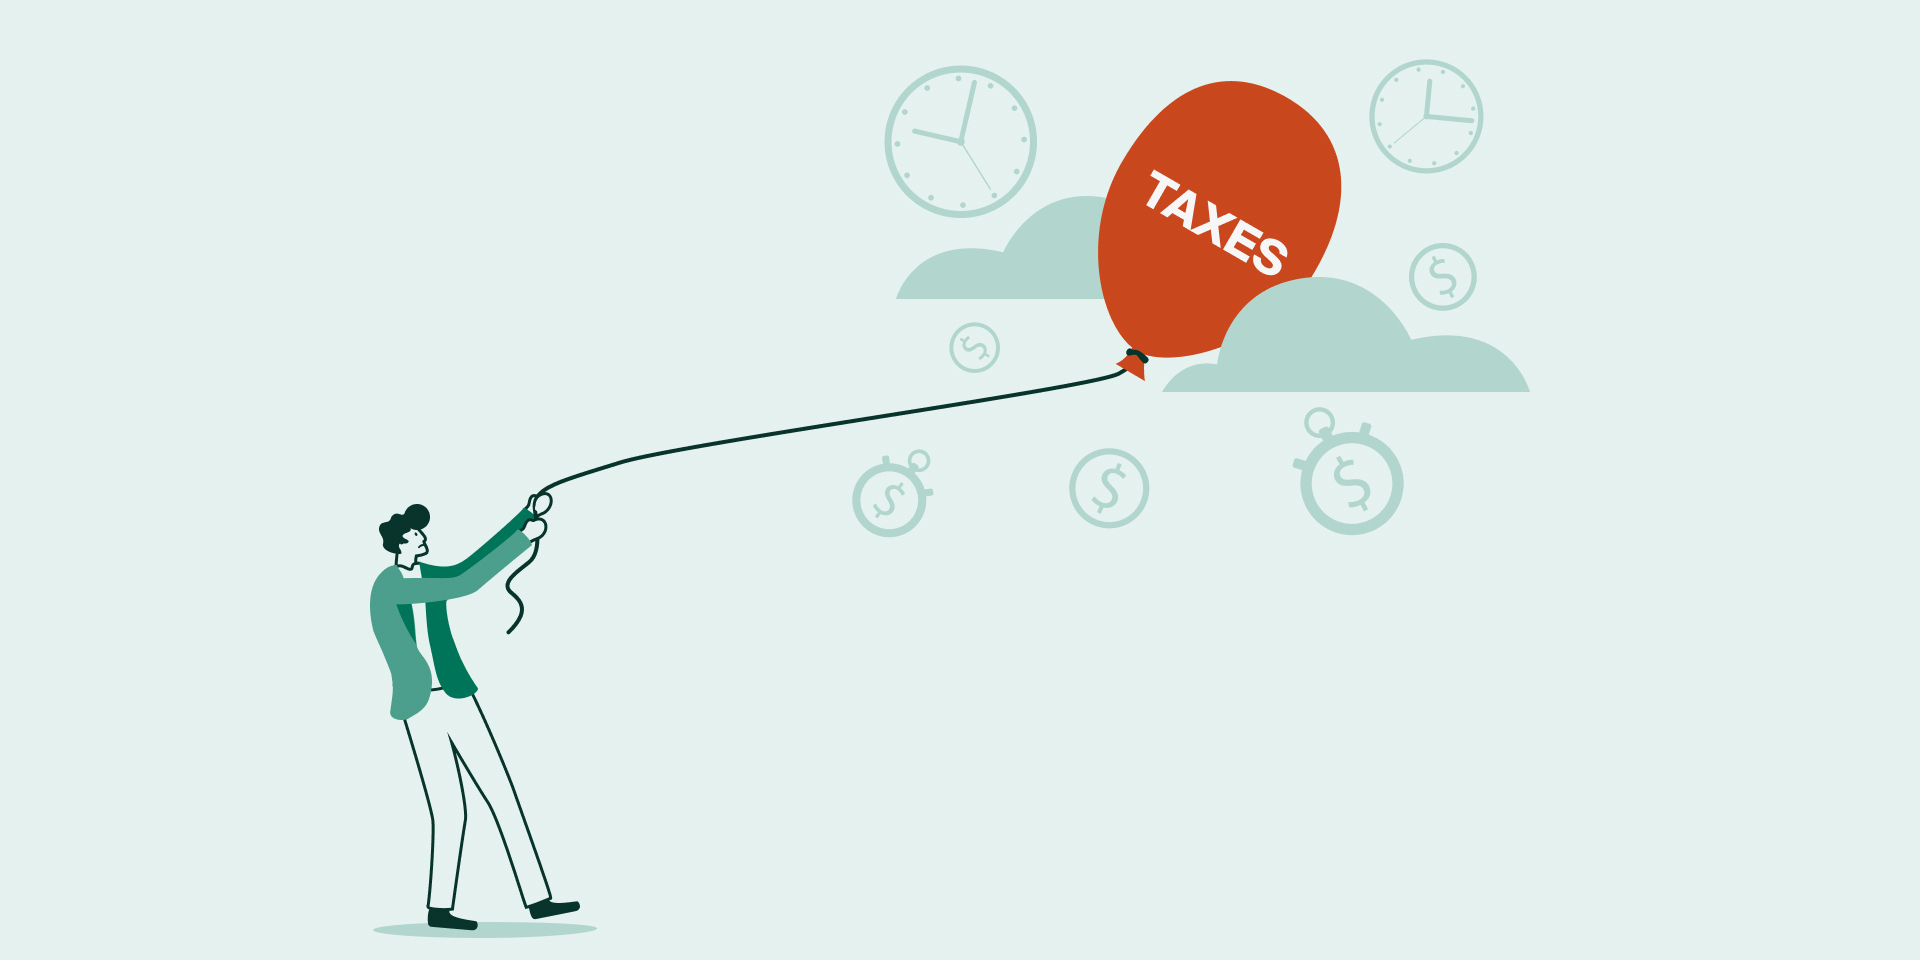 """Decorative, illustration of a person holding a floating balloon labeled """"taxes"""" 